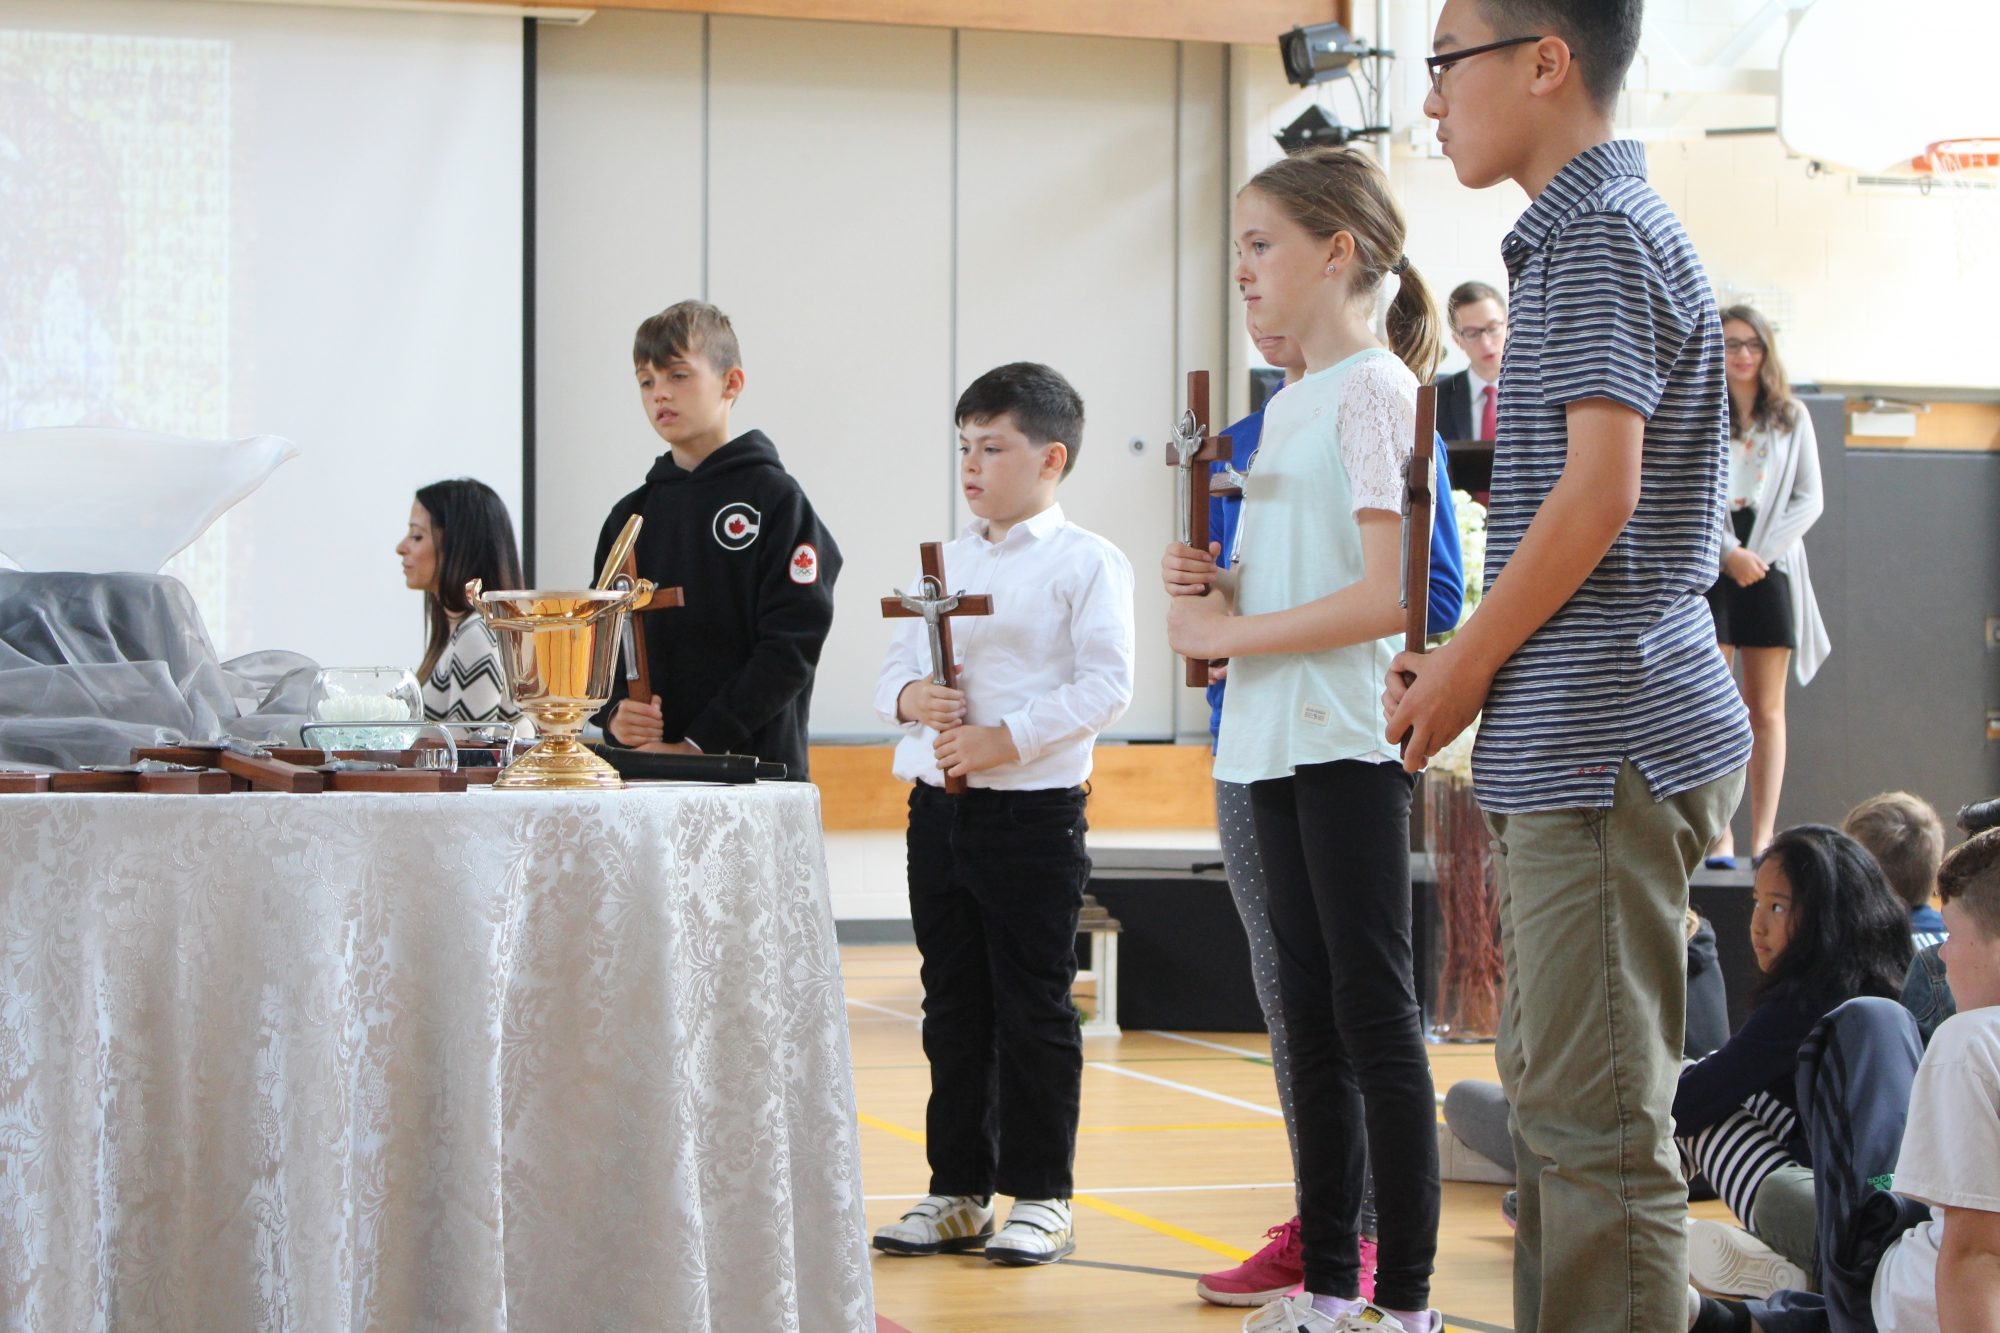 A Joyous Celebration for the Blessing & Dedication of St. Gregory the Great Catholic Elementary School